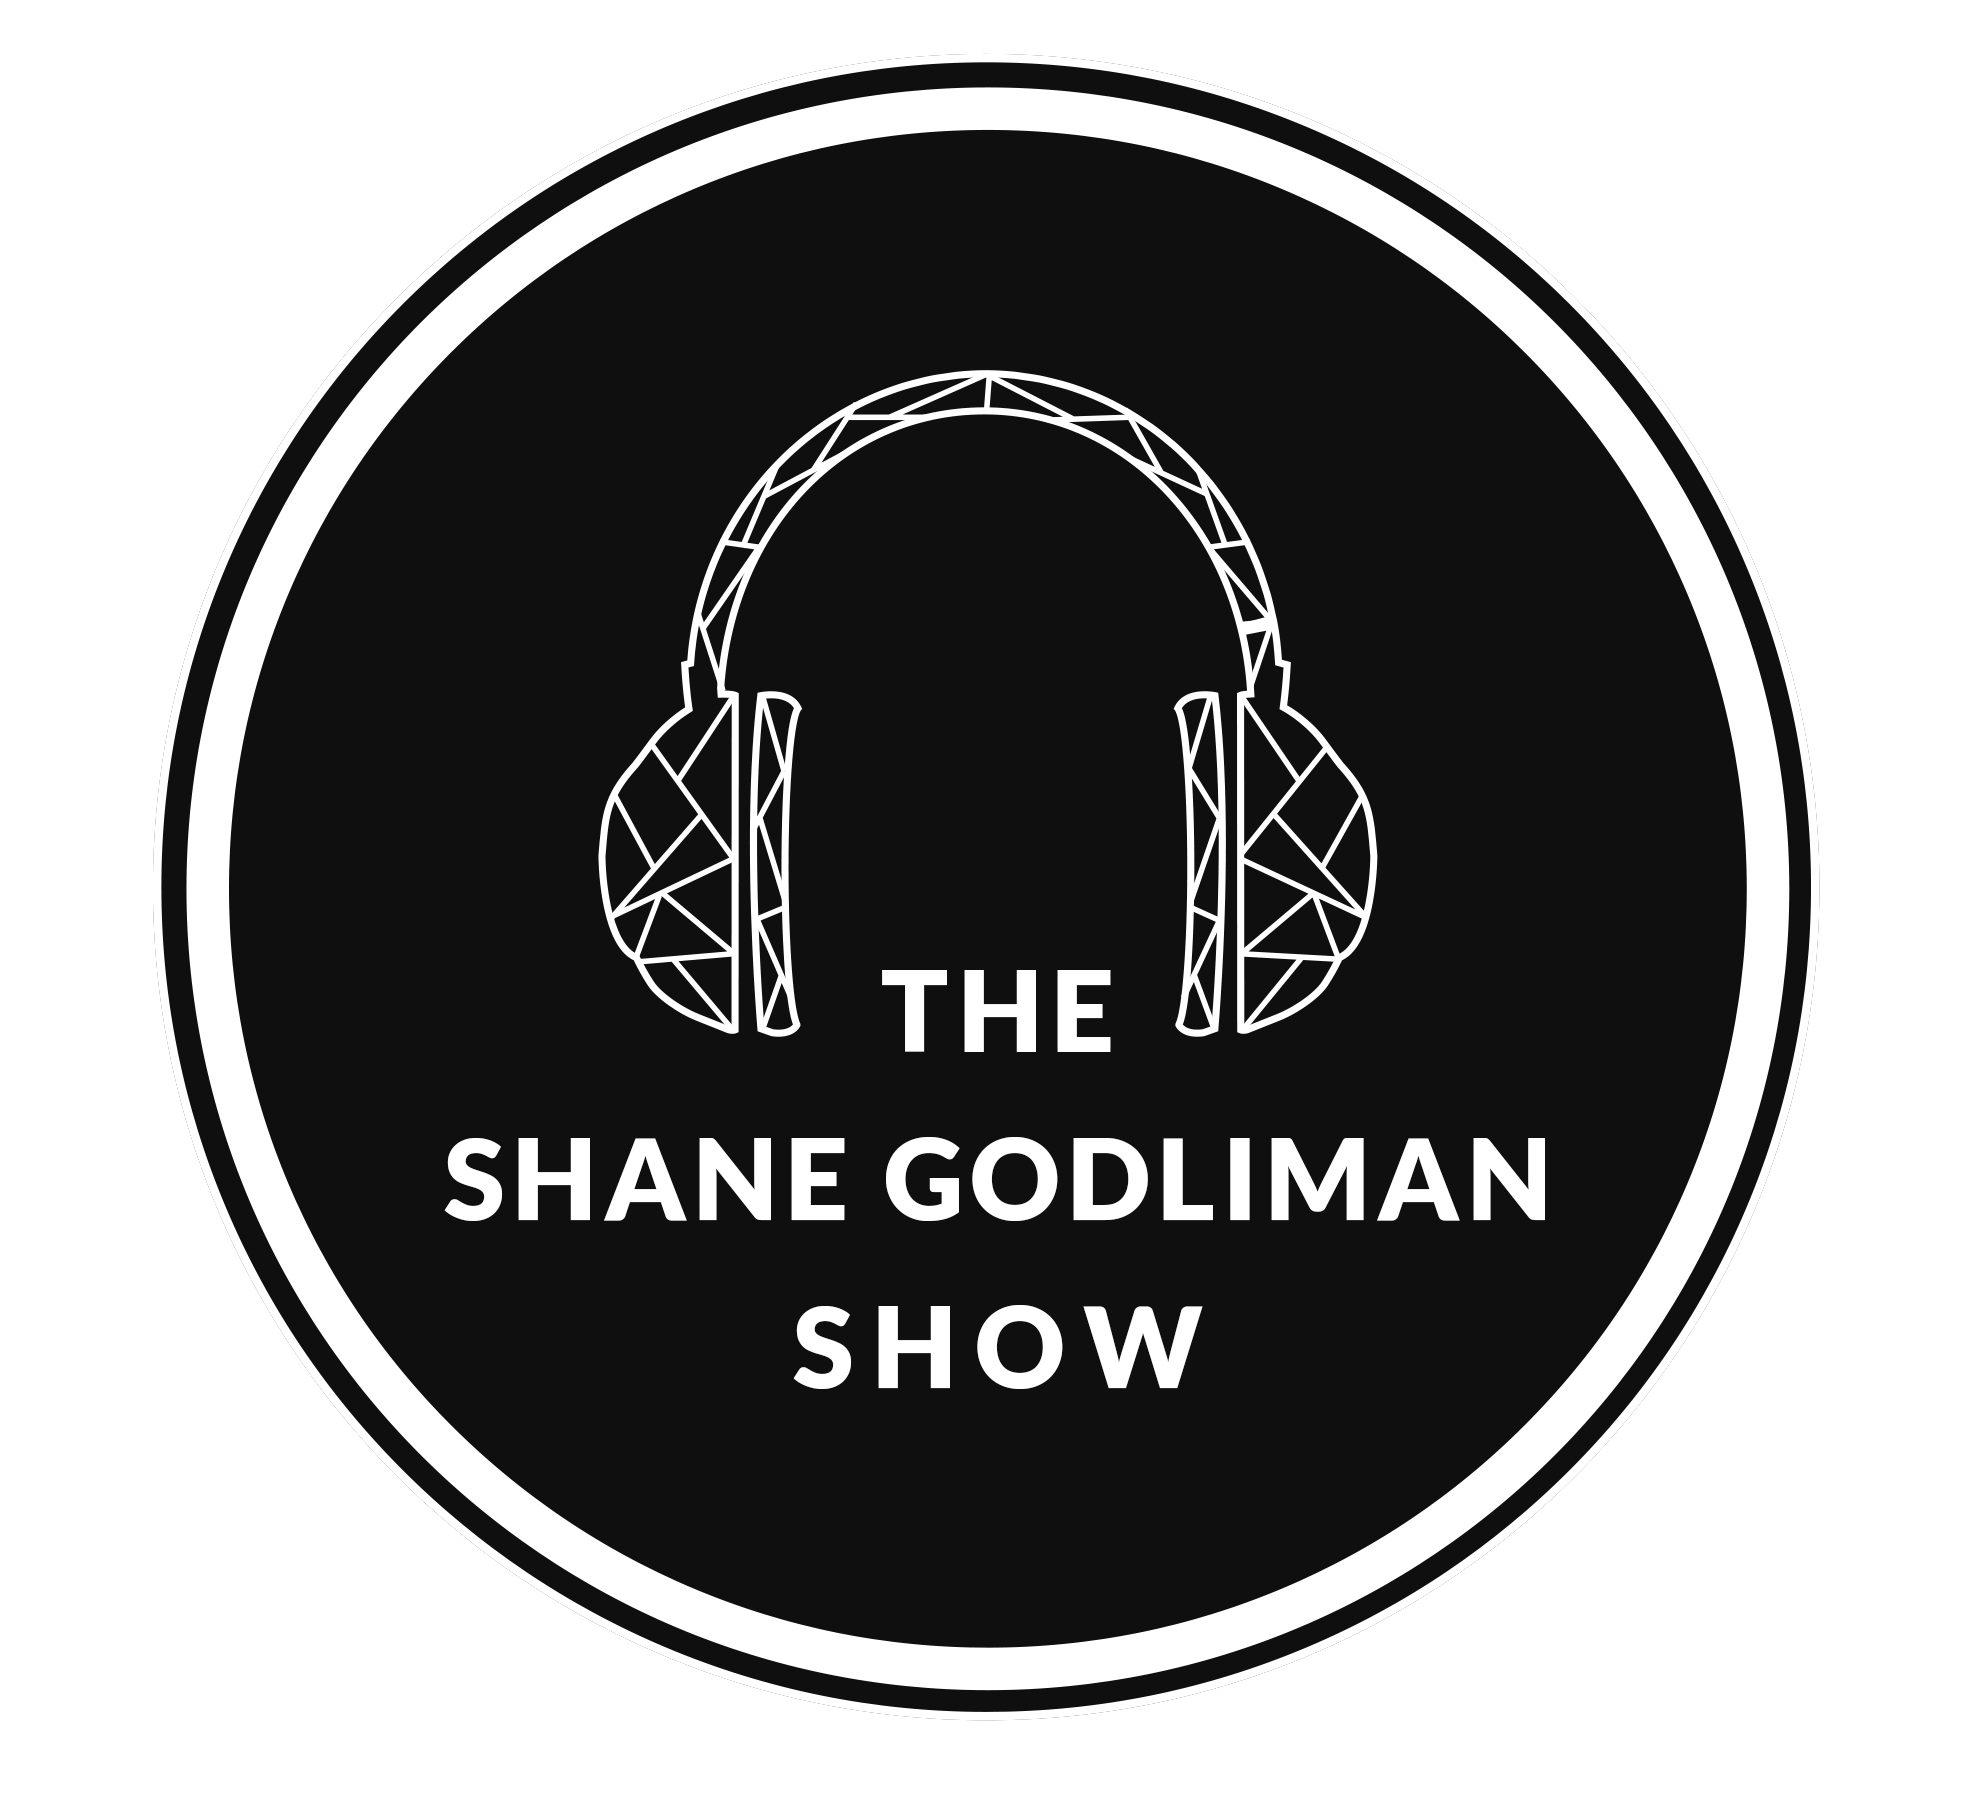 The Shane Godliman Show